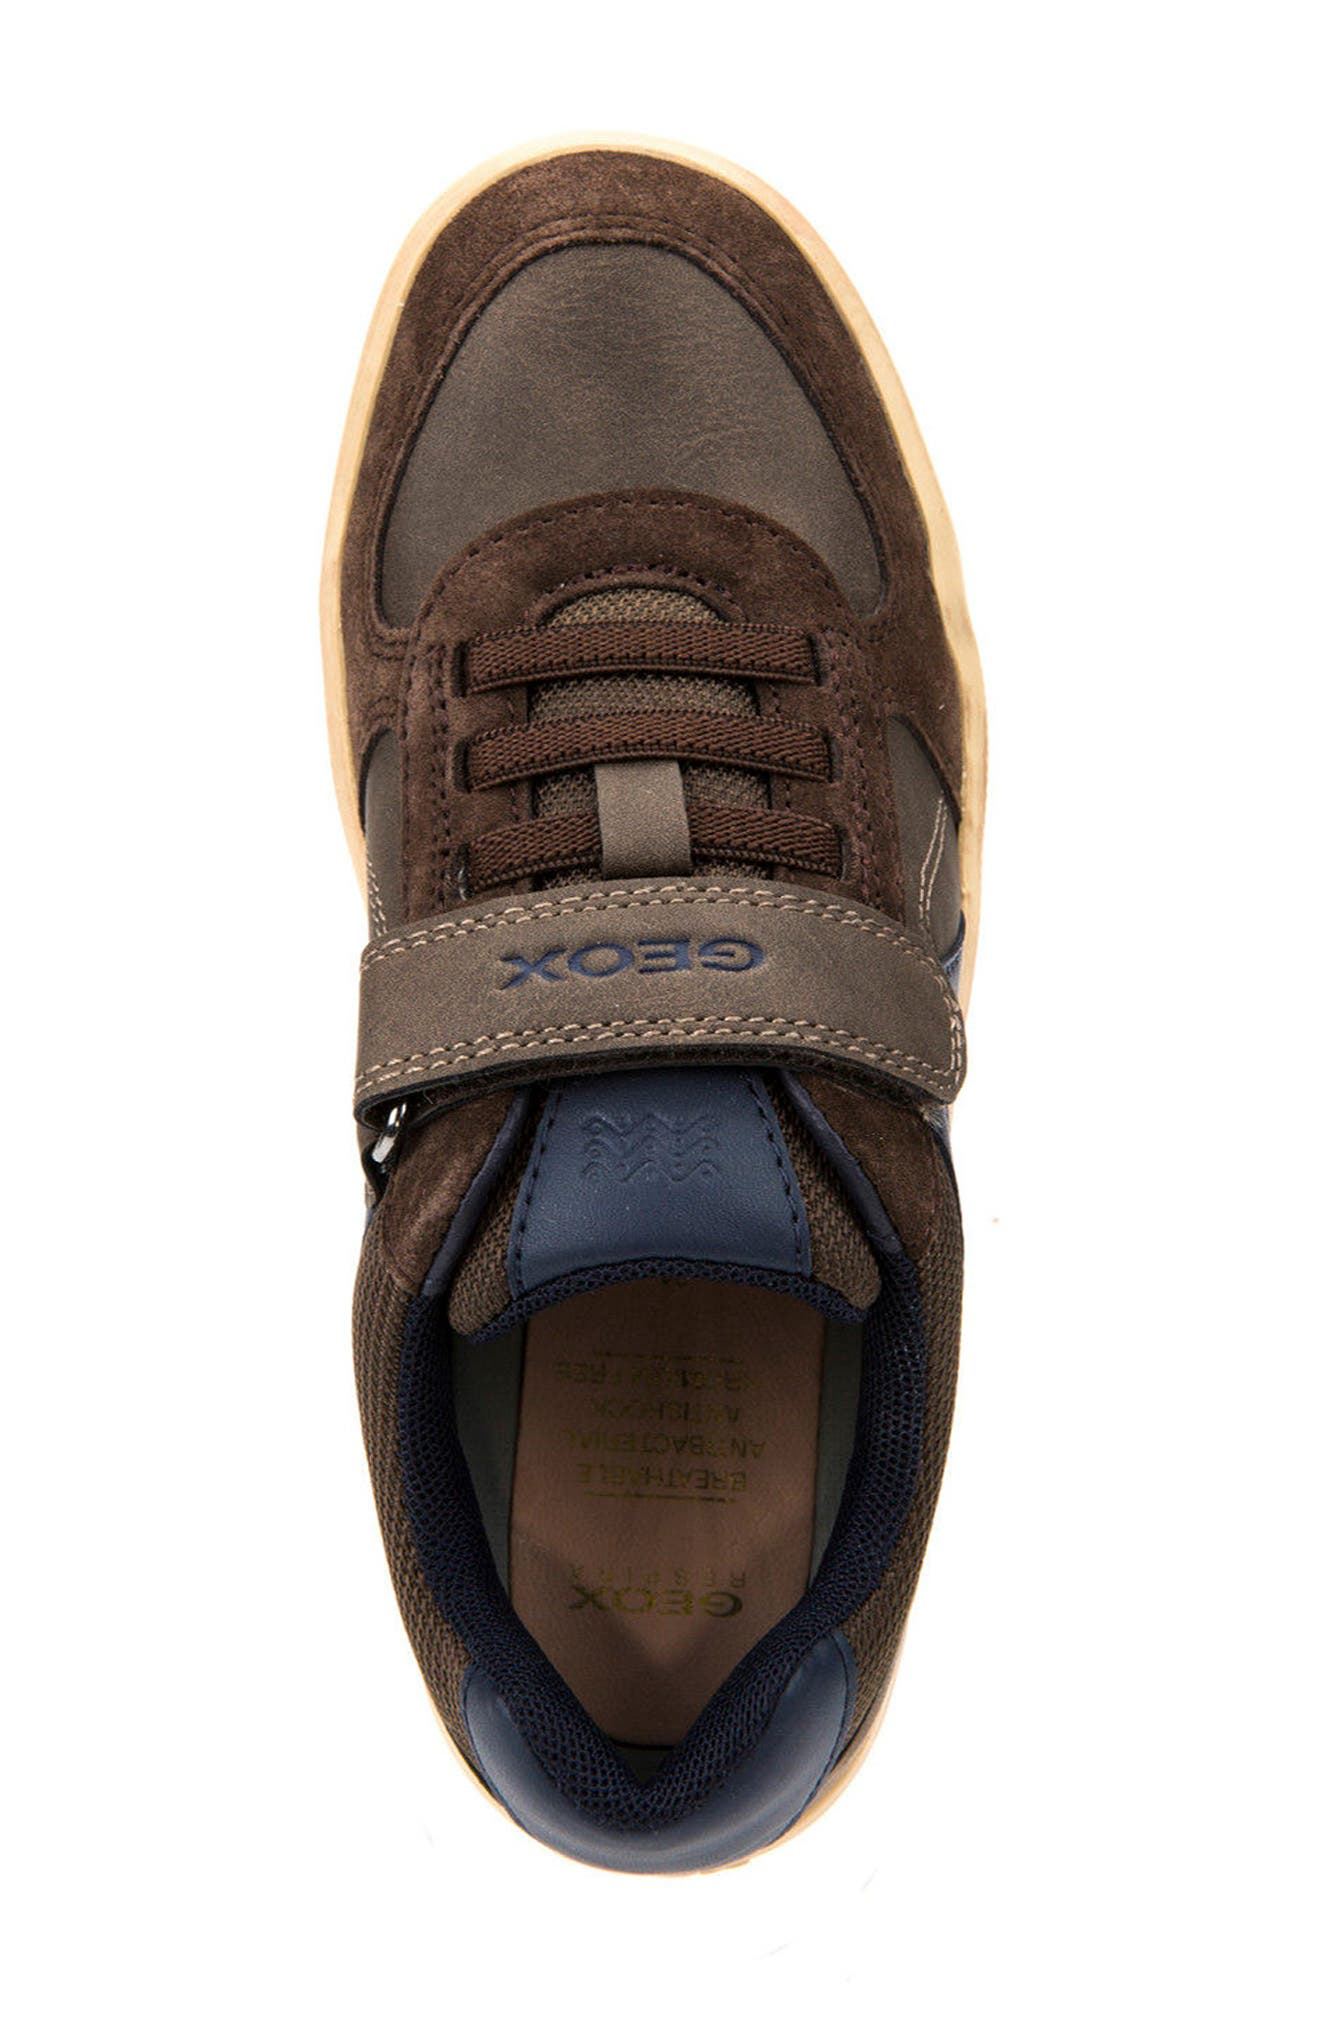 Arzach Low Top Sneaker,                             Alternate thumbnail 5, color,                             Brown/ Navy